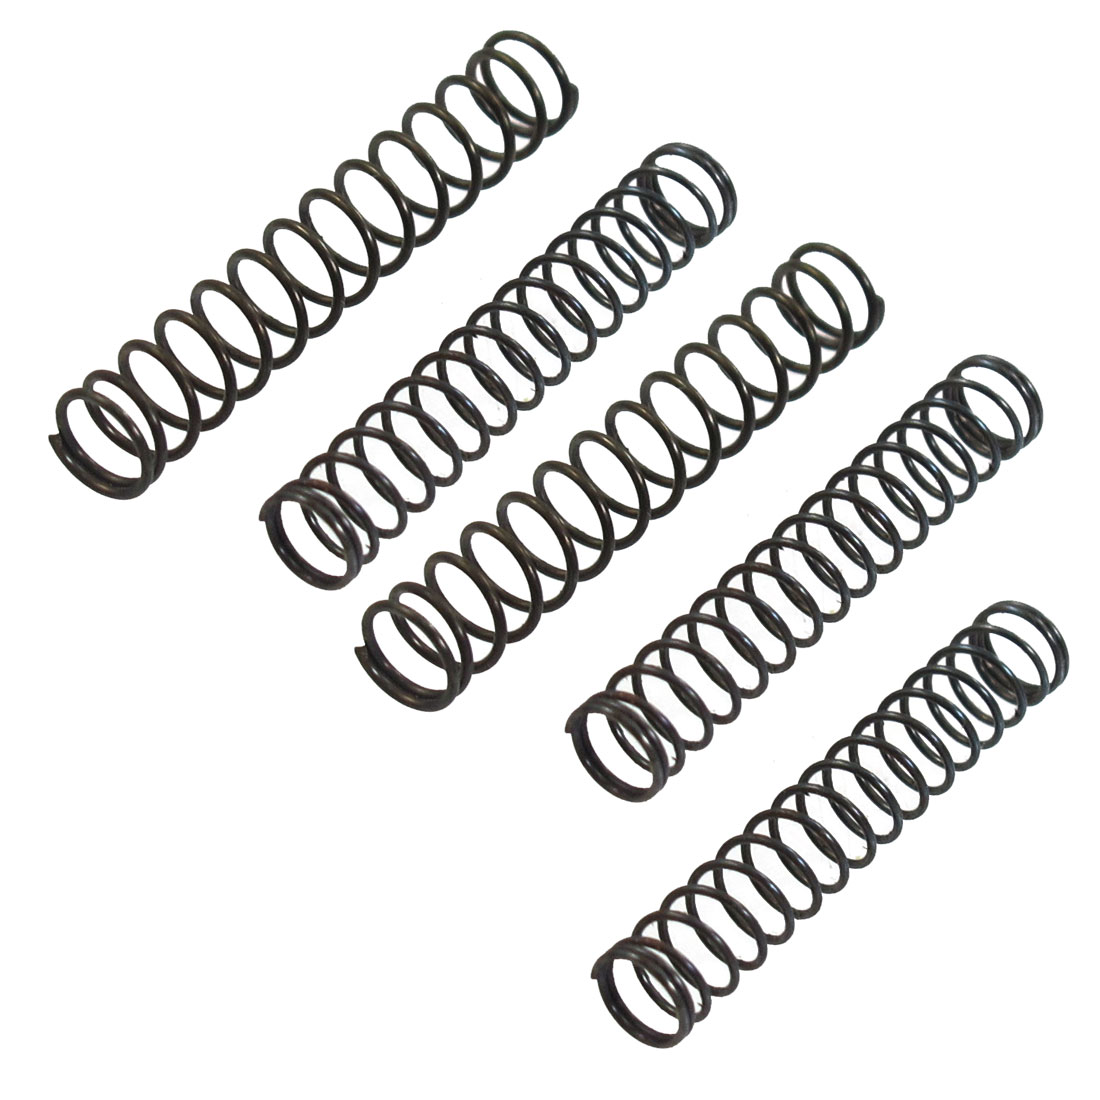 5 Pcs Electric Tool Coil Spring 29mmx5mm for Bosch GWS6-100 Angle Grinder